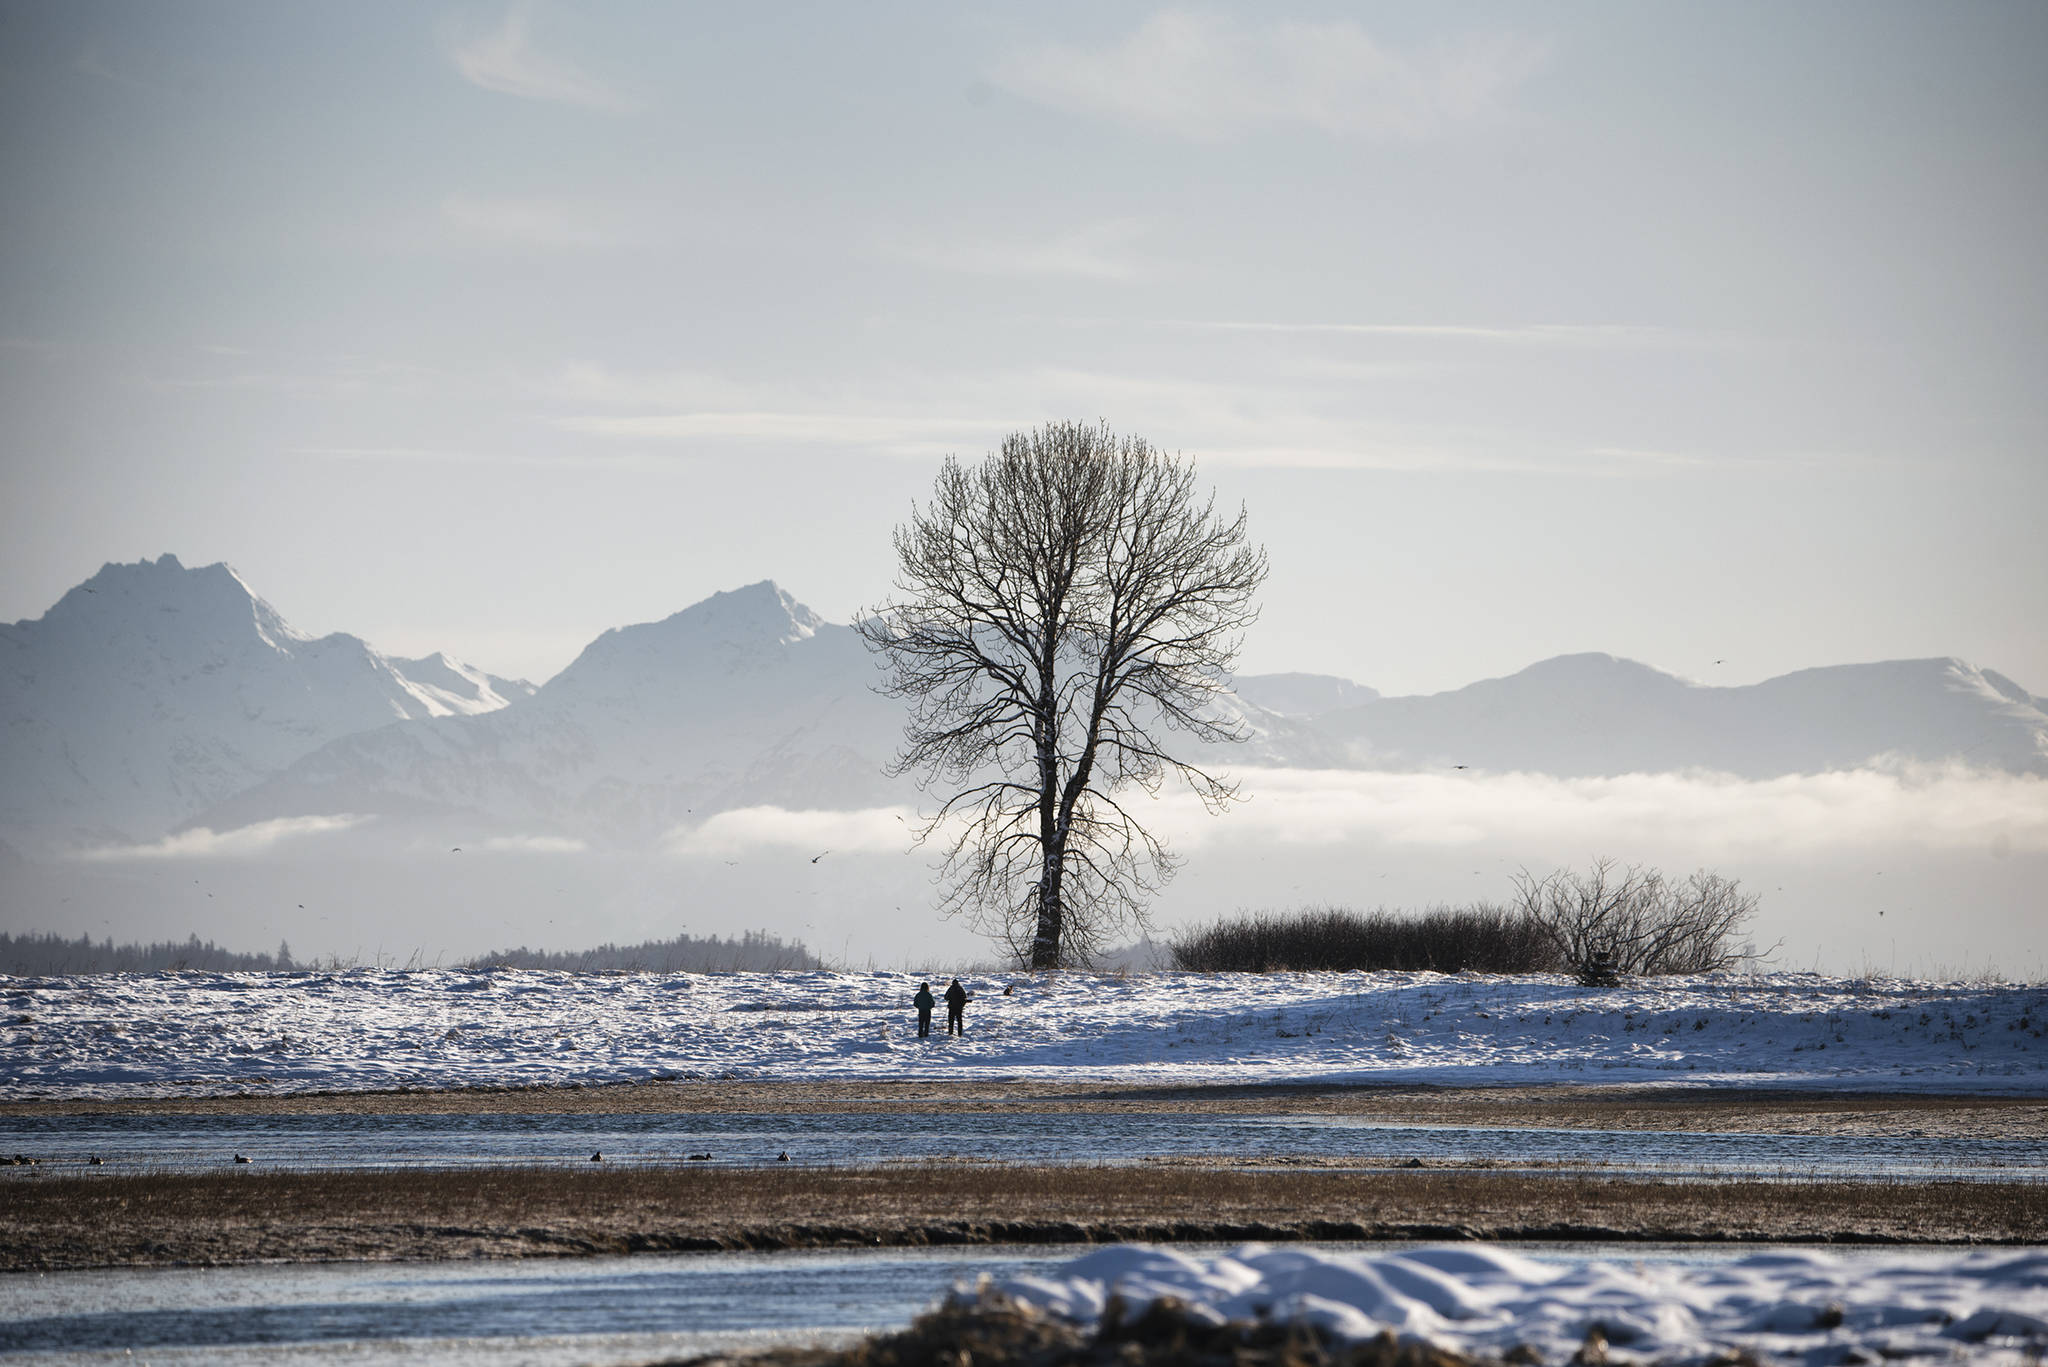 One tree stands alone with the Chilkat Range in the background on Jan. 31, 2021. (Courtesy Photo / Kenneth Gill, gillfoto)